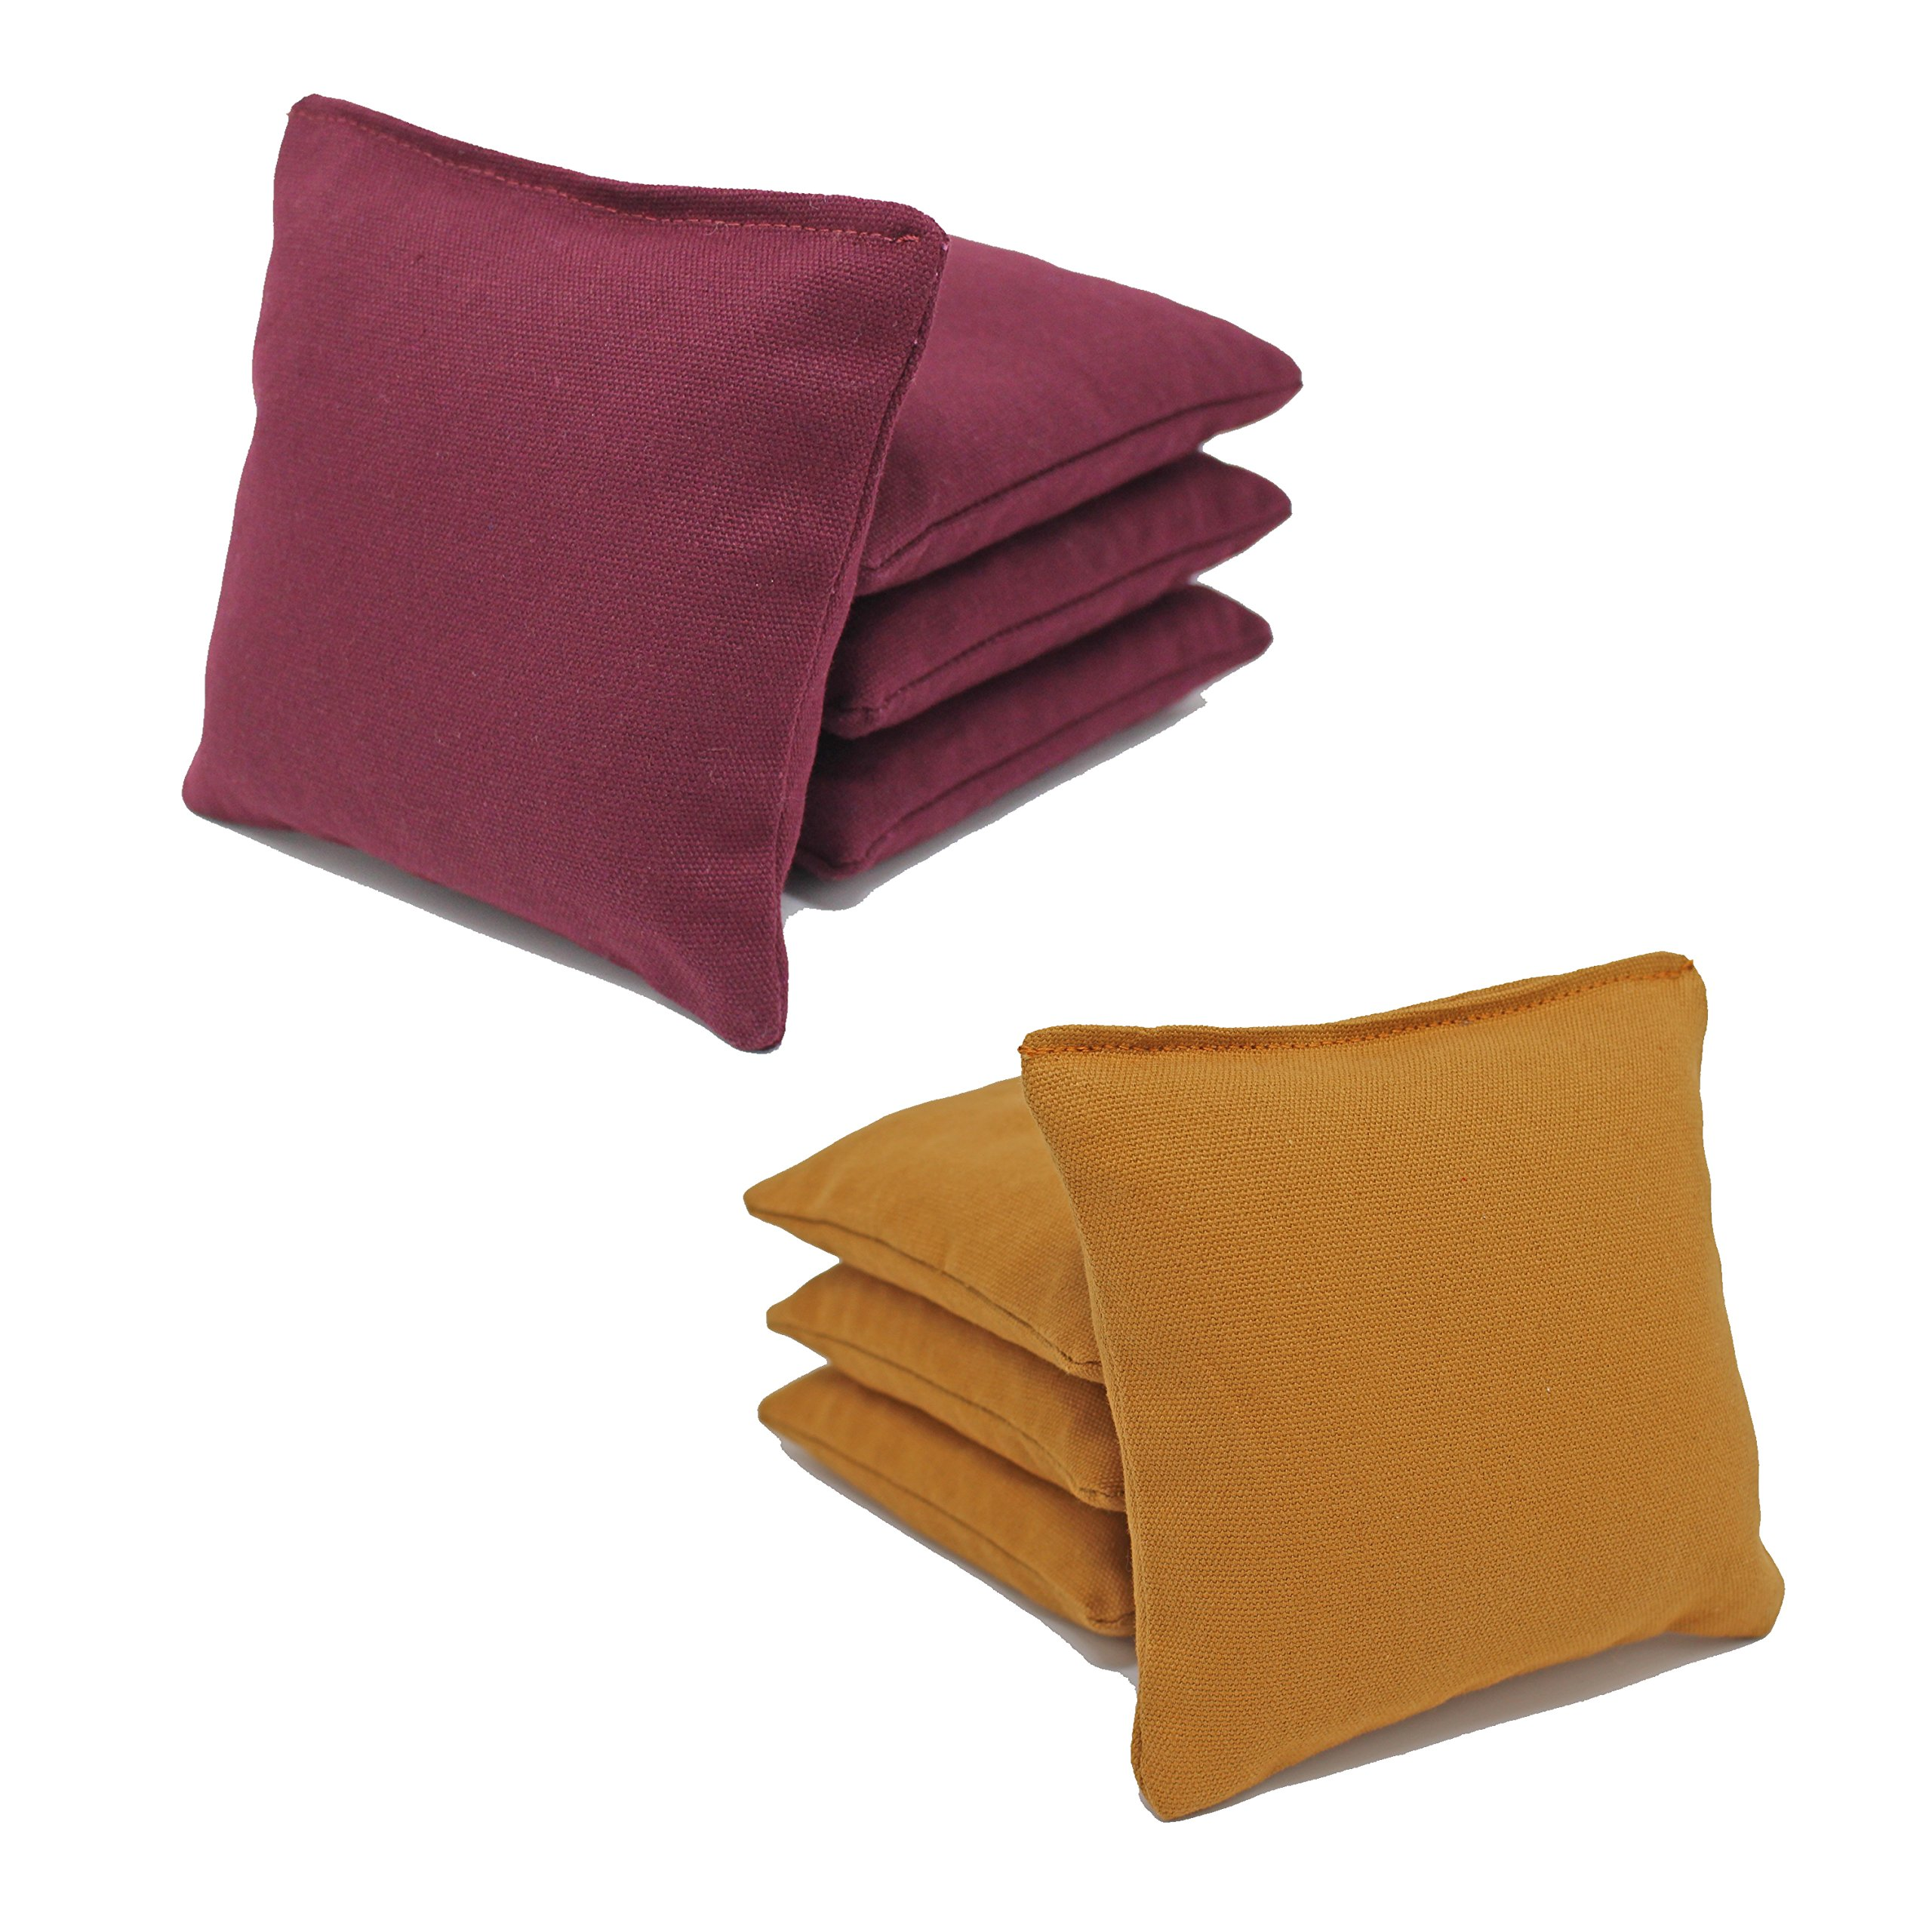 Free Donkey Sports ACA Regulation Cornhole Bags (Set of 8) (Burgundy and Gold) 25+ Colors to Choose from.